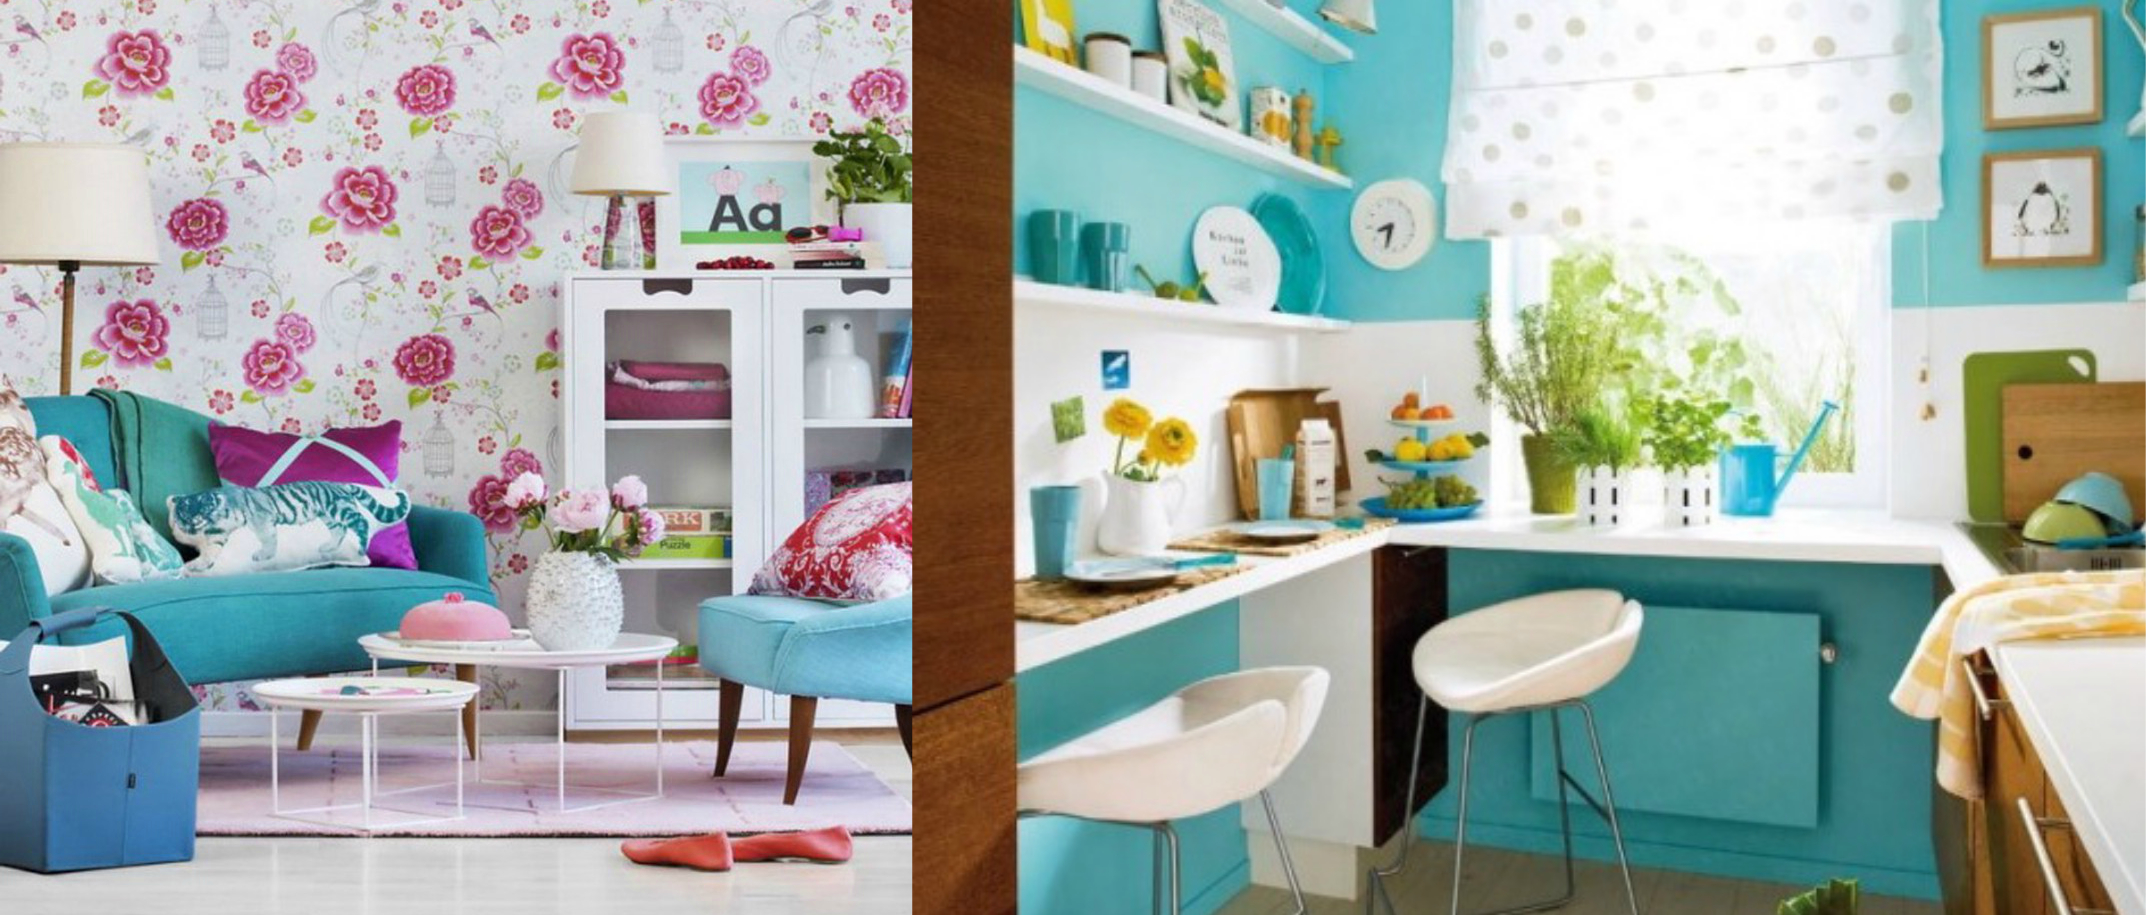 Refreshing spring interior decoration ideas what woman needs for Some interior design ideas